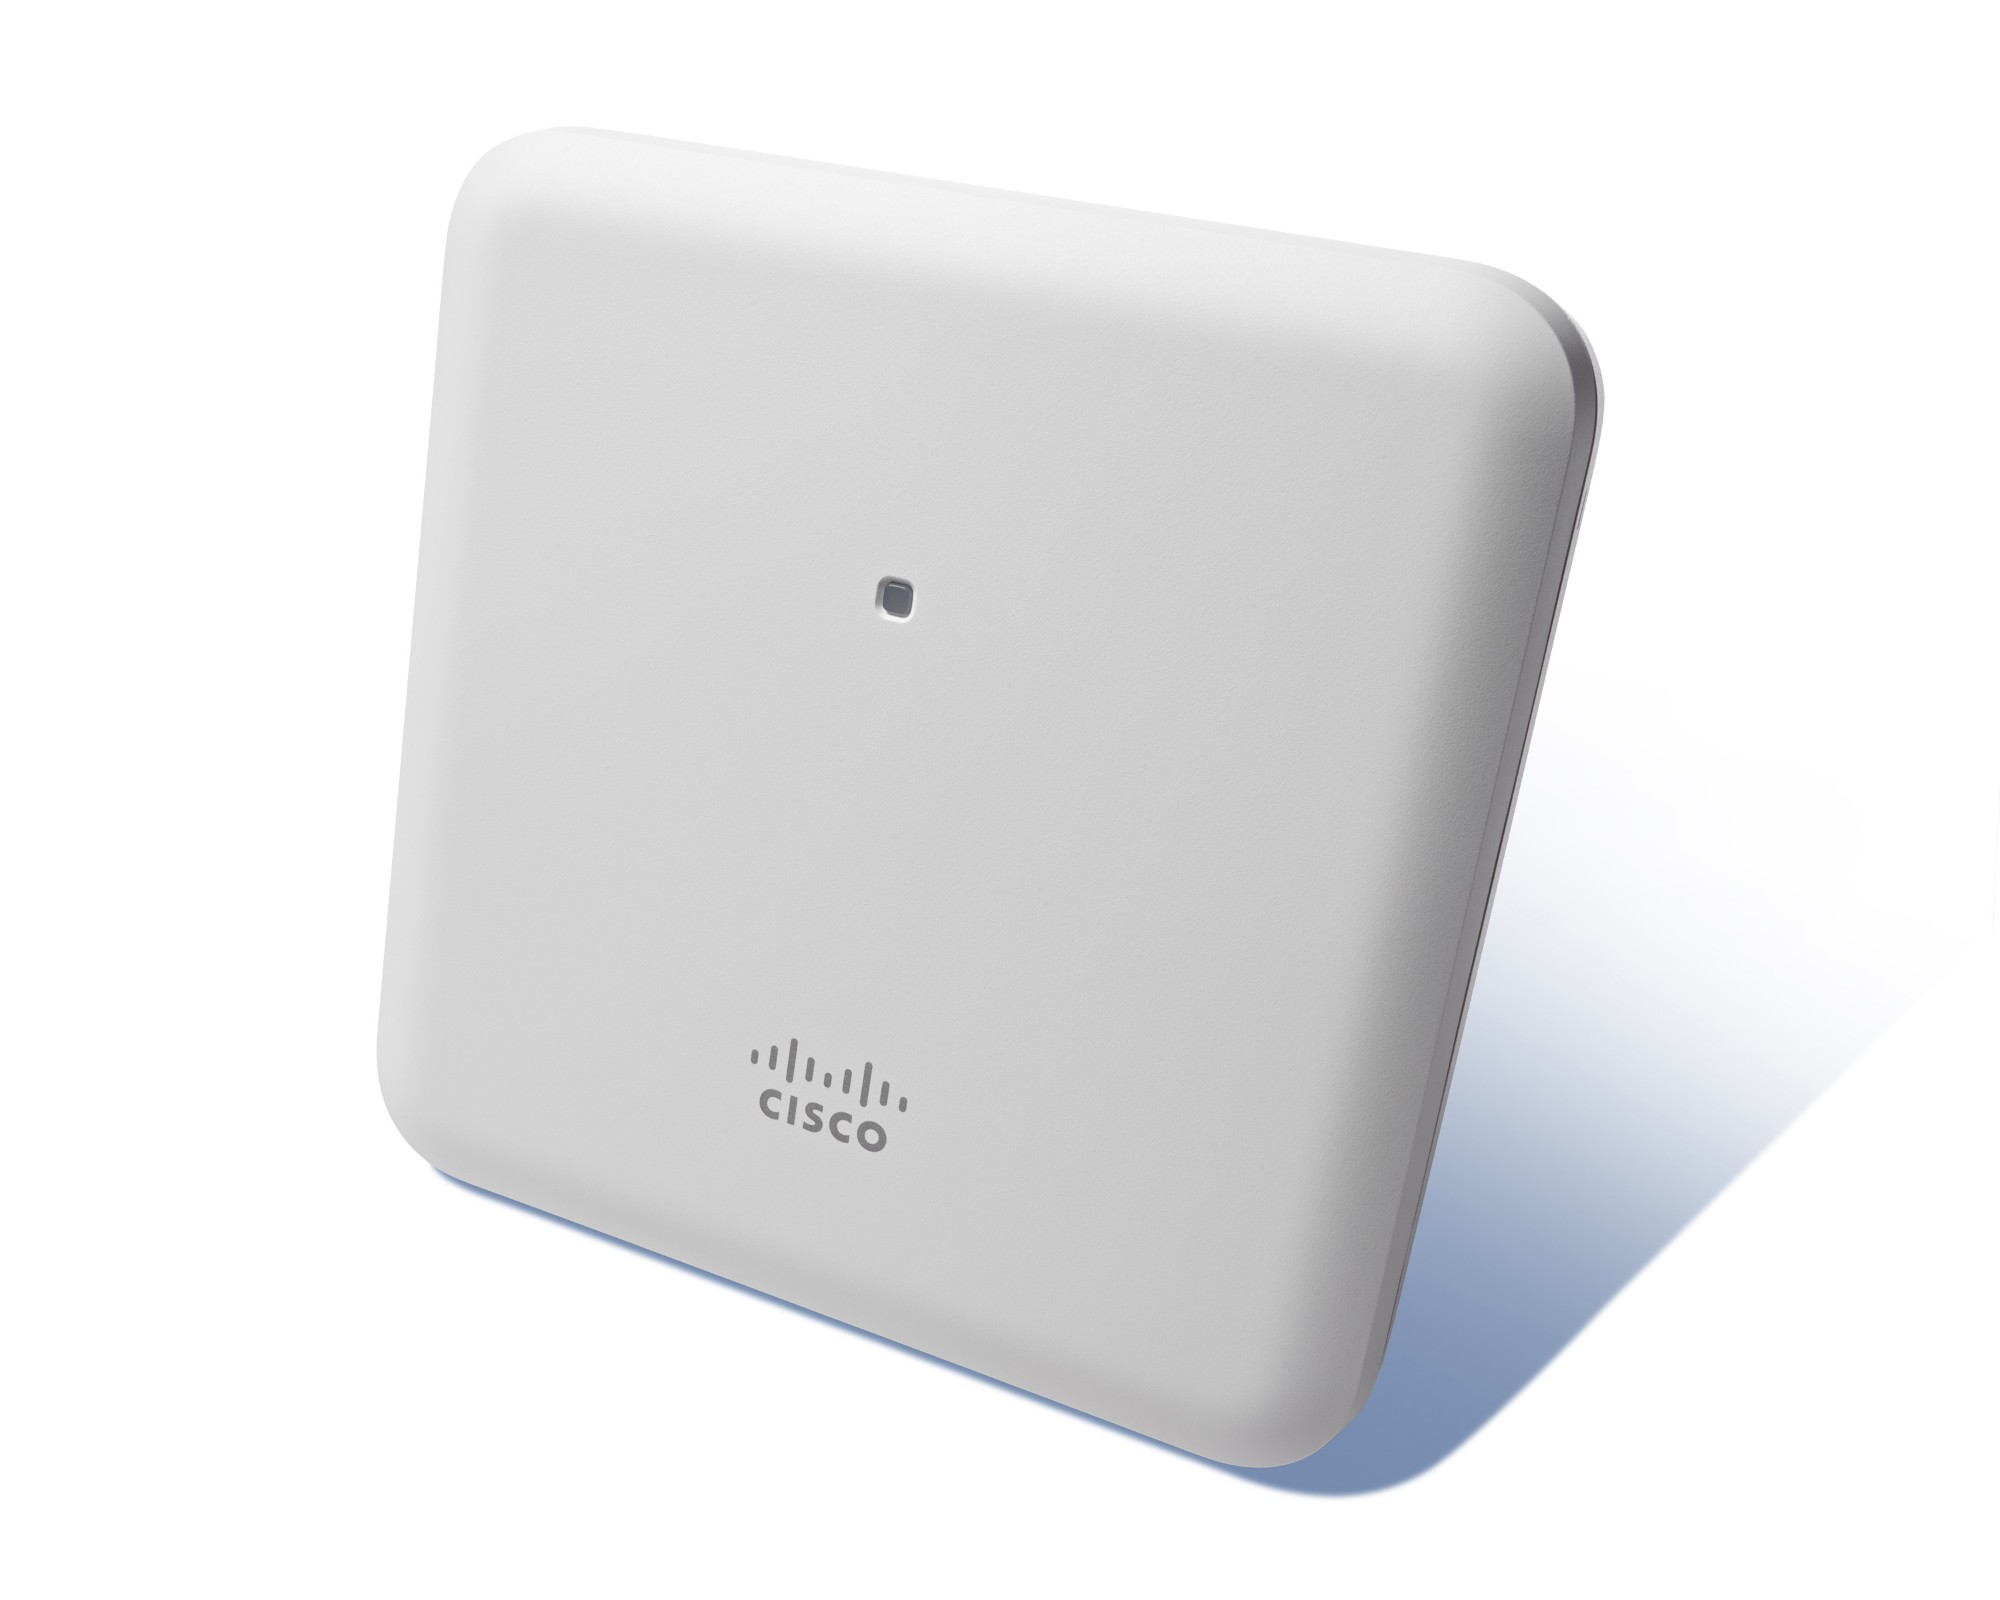 Cisco Aironet 1850 2000 Mbit/s Blanco